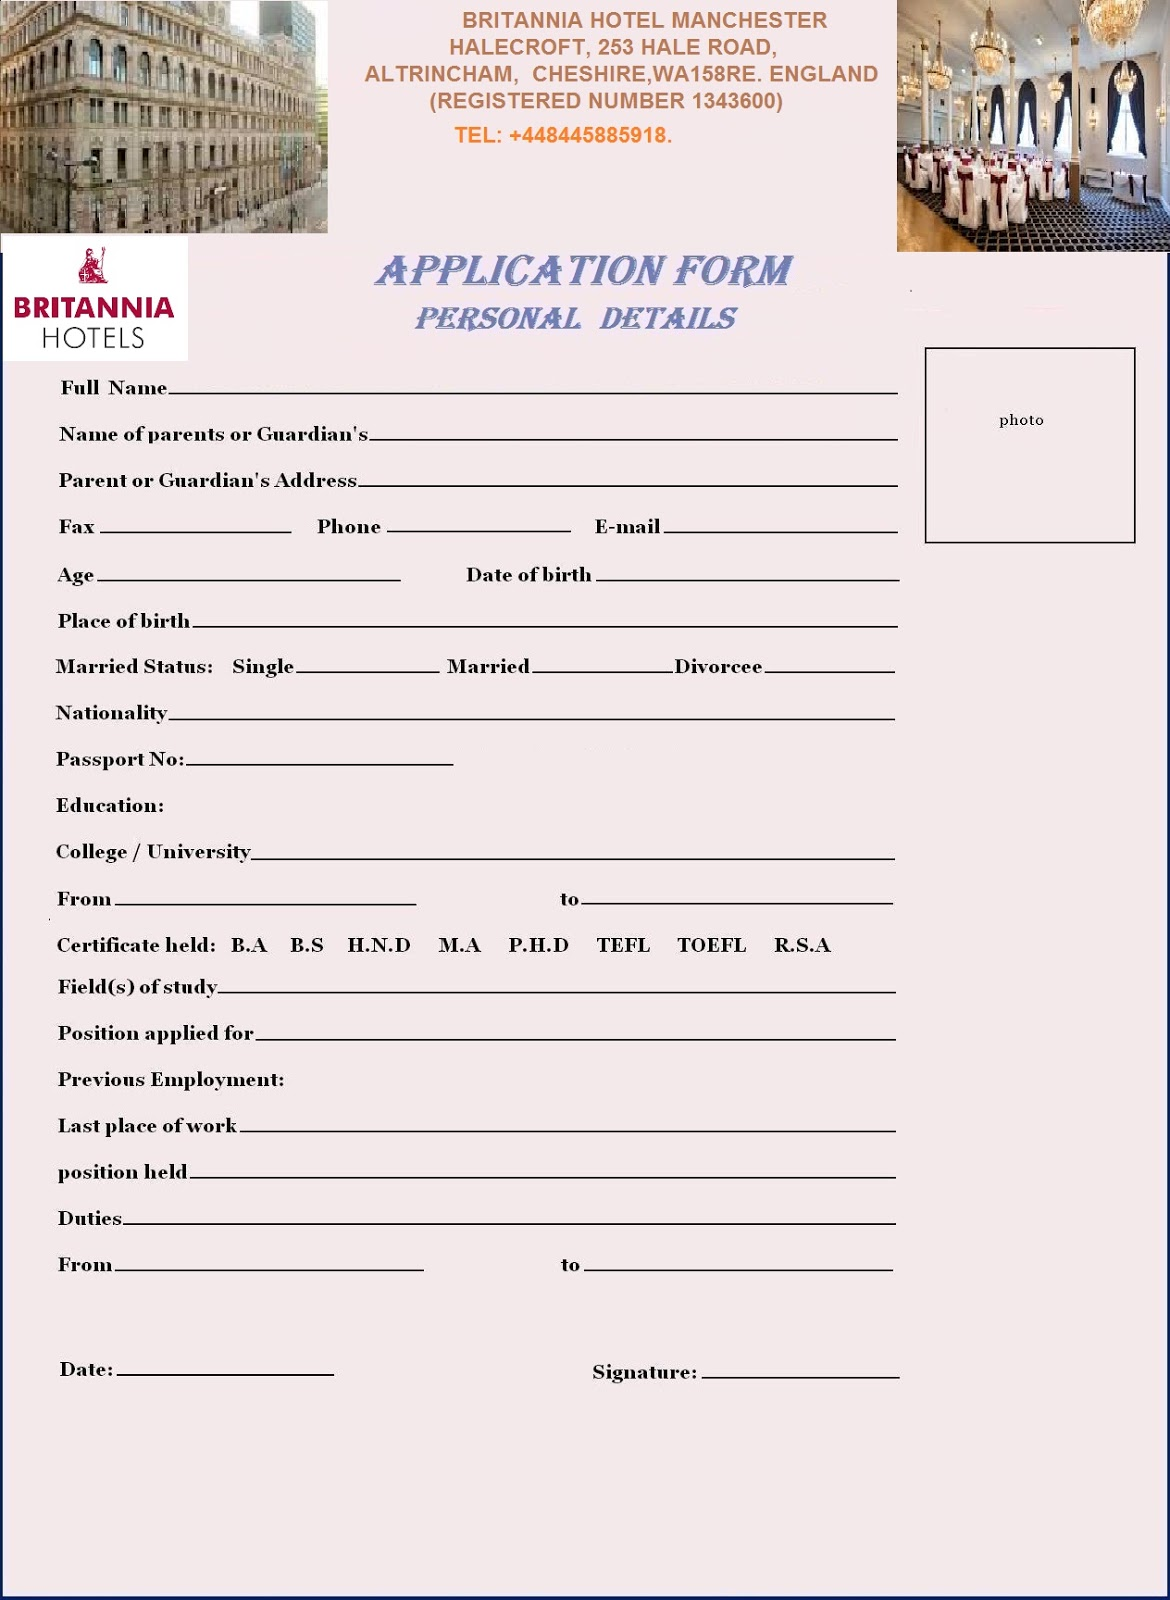 APPLICATION%2BFORM Job Application Form For Hospitality on security job application, corporate job application, childcare job application, red roof inn job application, communications job application, construction job application, computer job application, farming job application, leadership job application, meme job application, hotel job application, grocery job application, hr job application, professional job application, retail job application, food job application, technology job application, academy job application, li job application, health care job application,